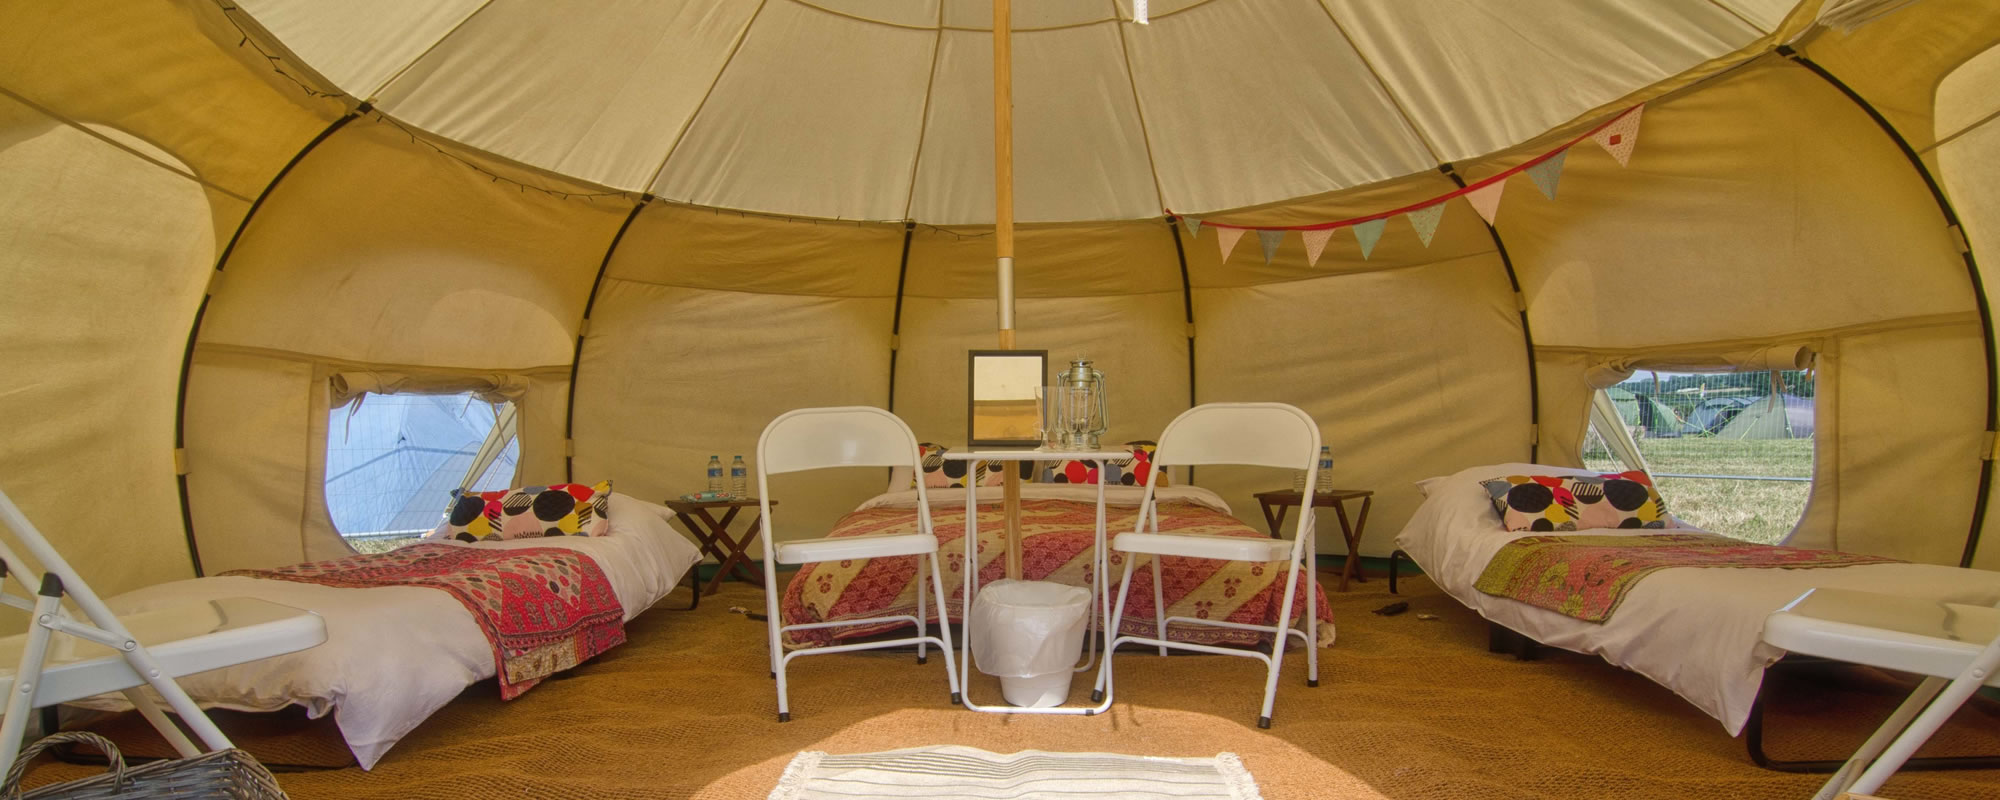 banner-our-tents-interior